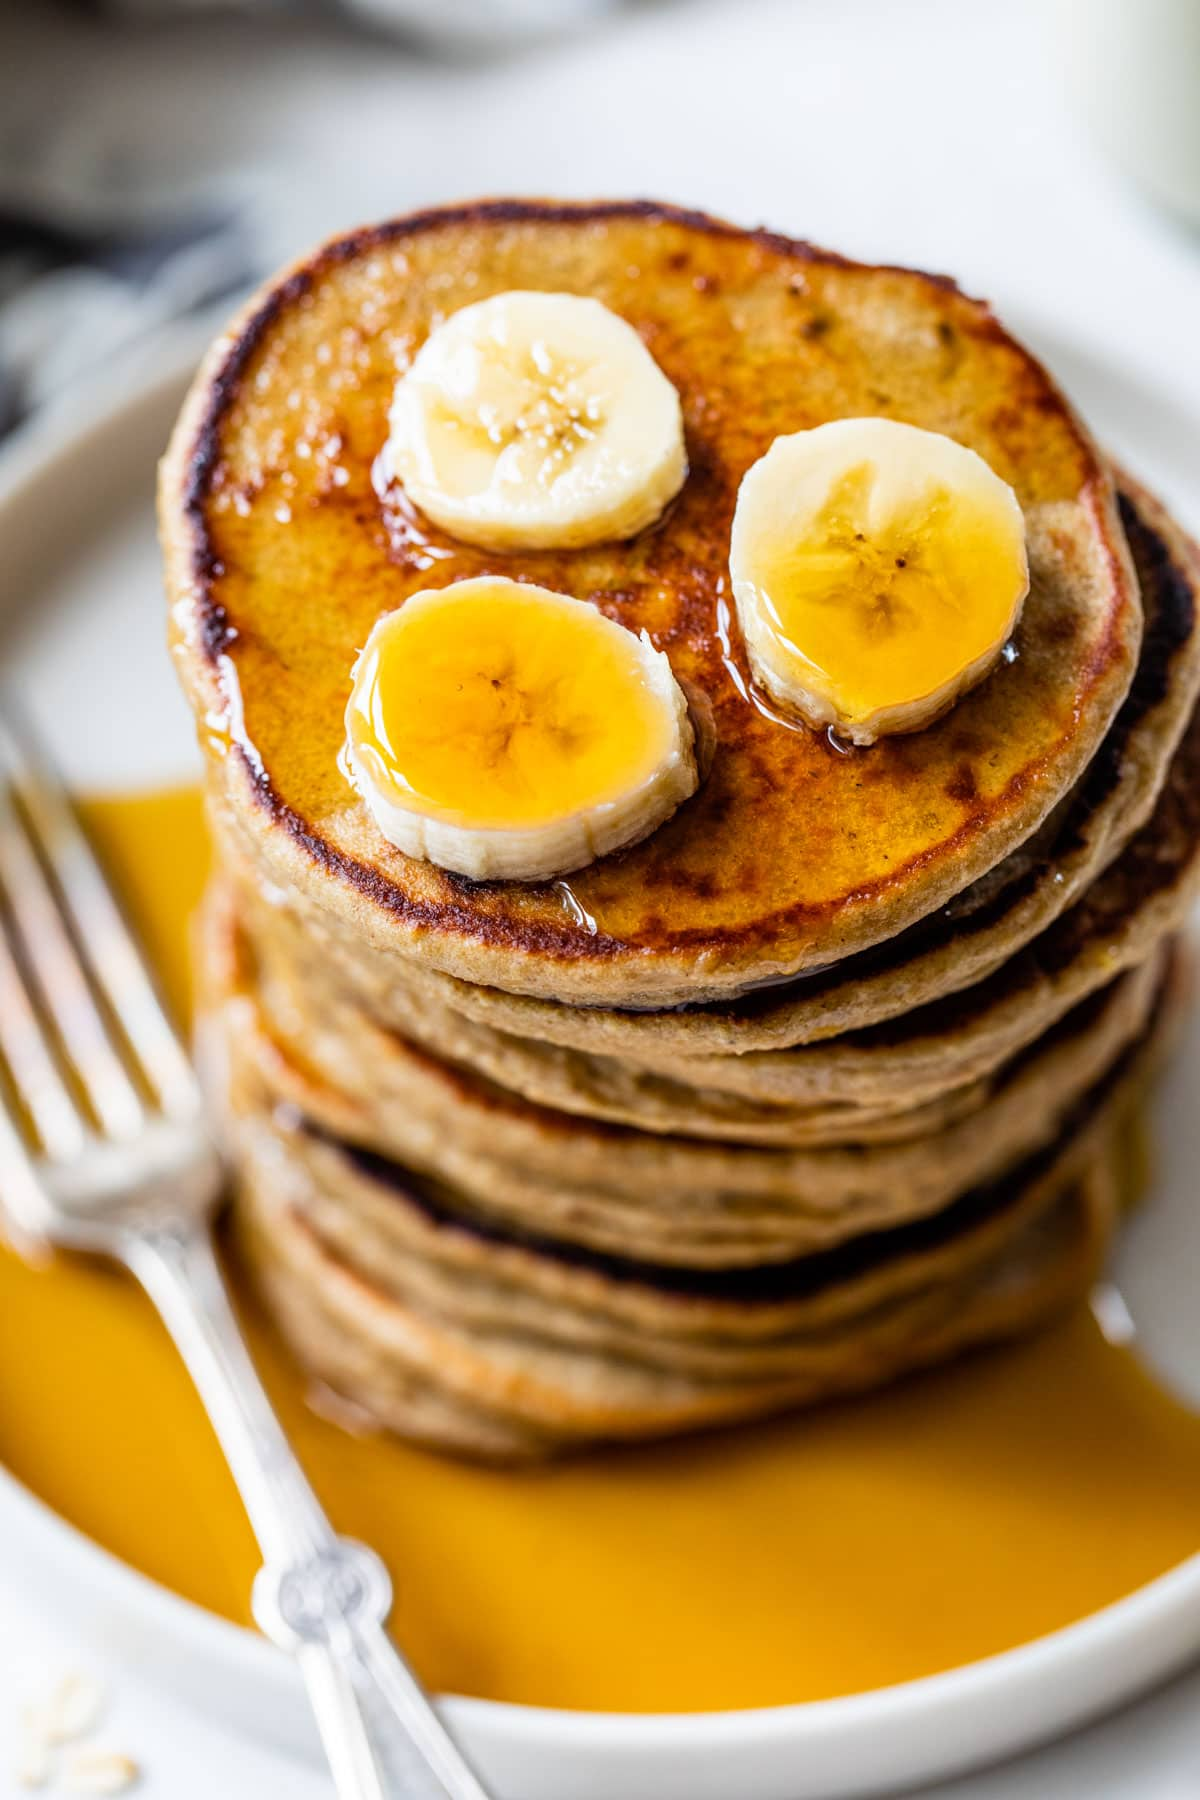 How to make heart shaped banana oatmeal pancakes. Flourless oat pancakes, made right in the blender! Recipe at wellplated.com | @wellplated